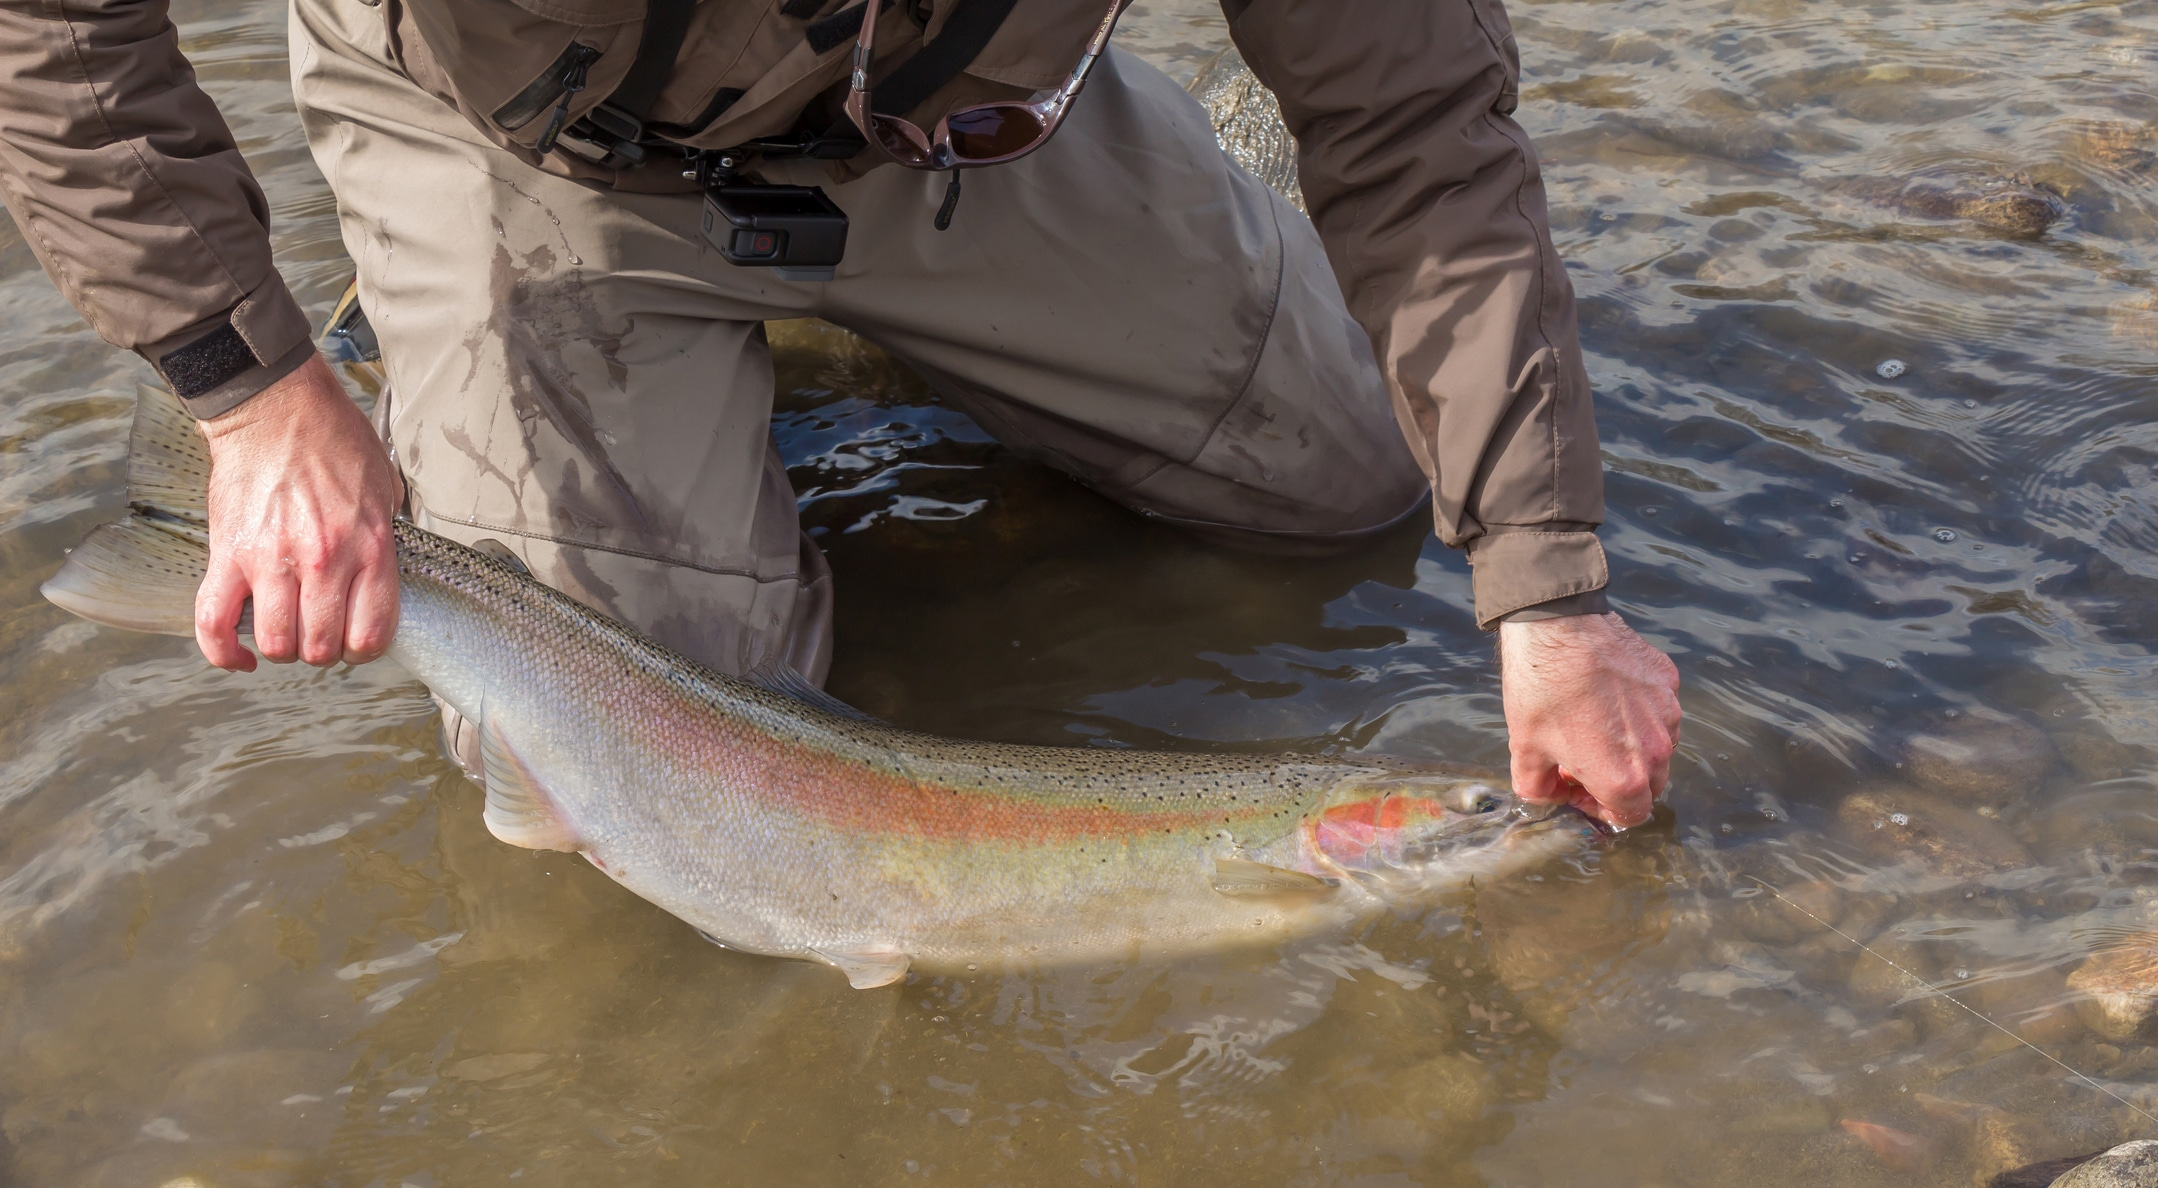 Man returns colorful fish to muddy waters.